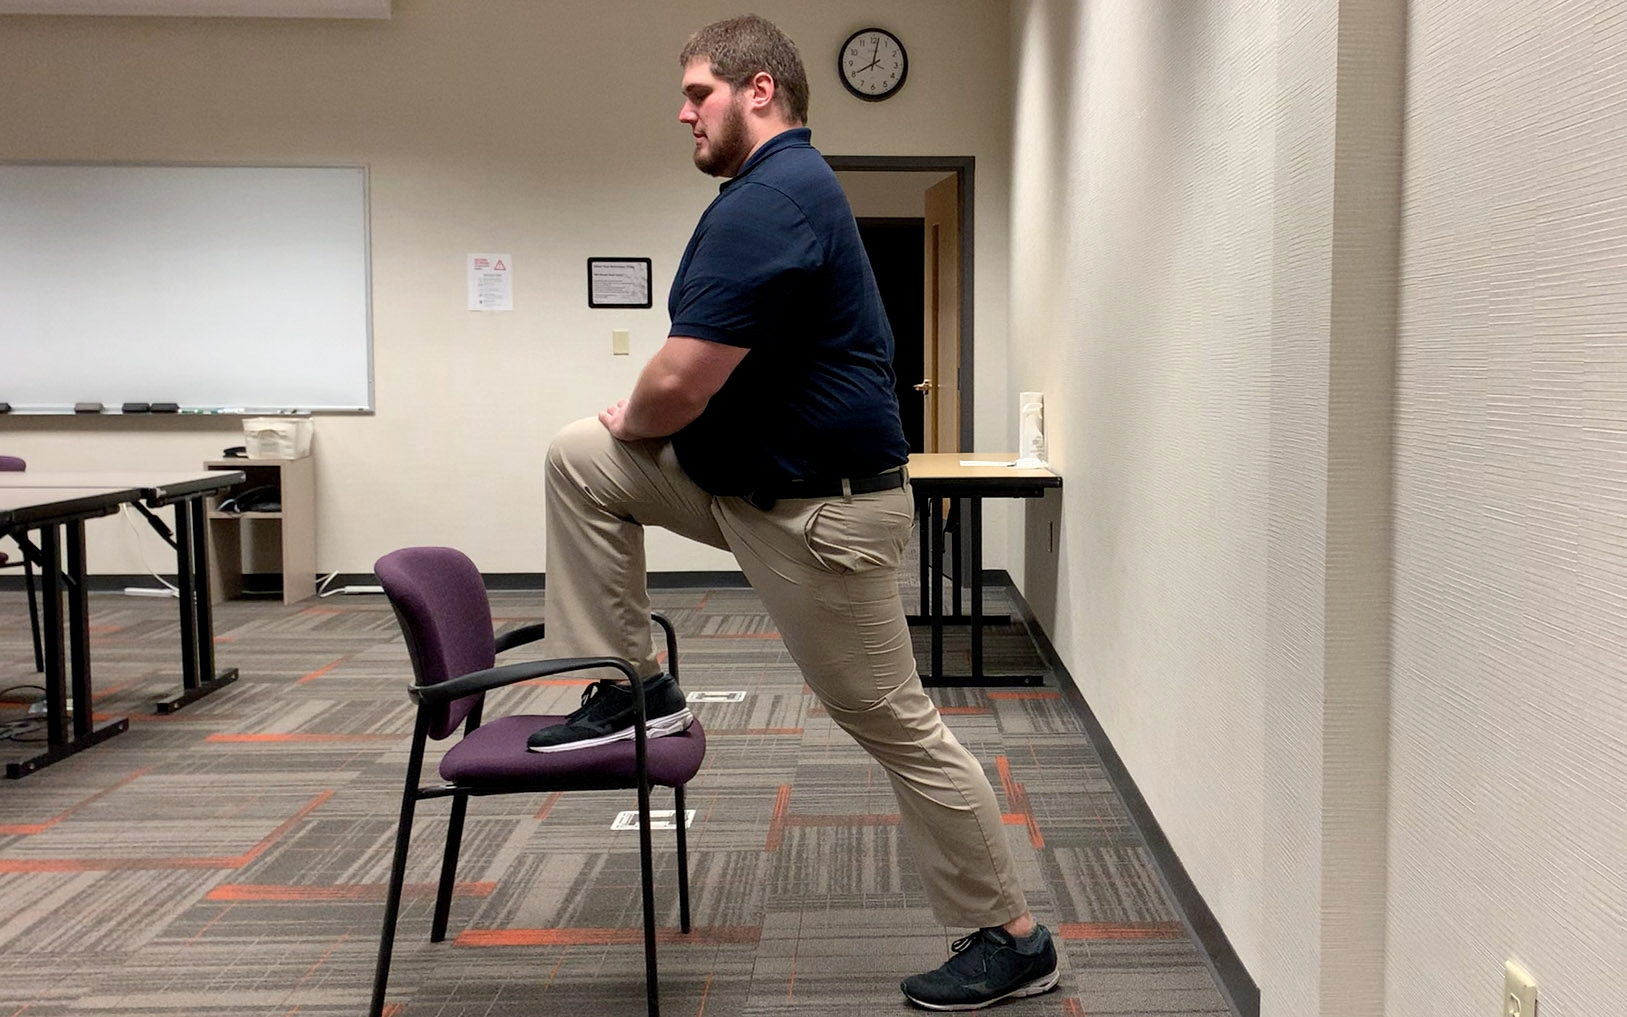 A physical therapist demonstrates stretching his quad by propping his right foot up onto a chair, bending his knee and leaning forward.